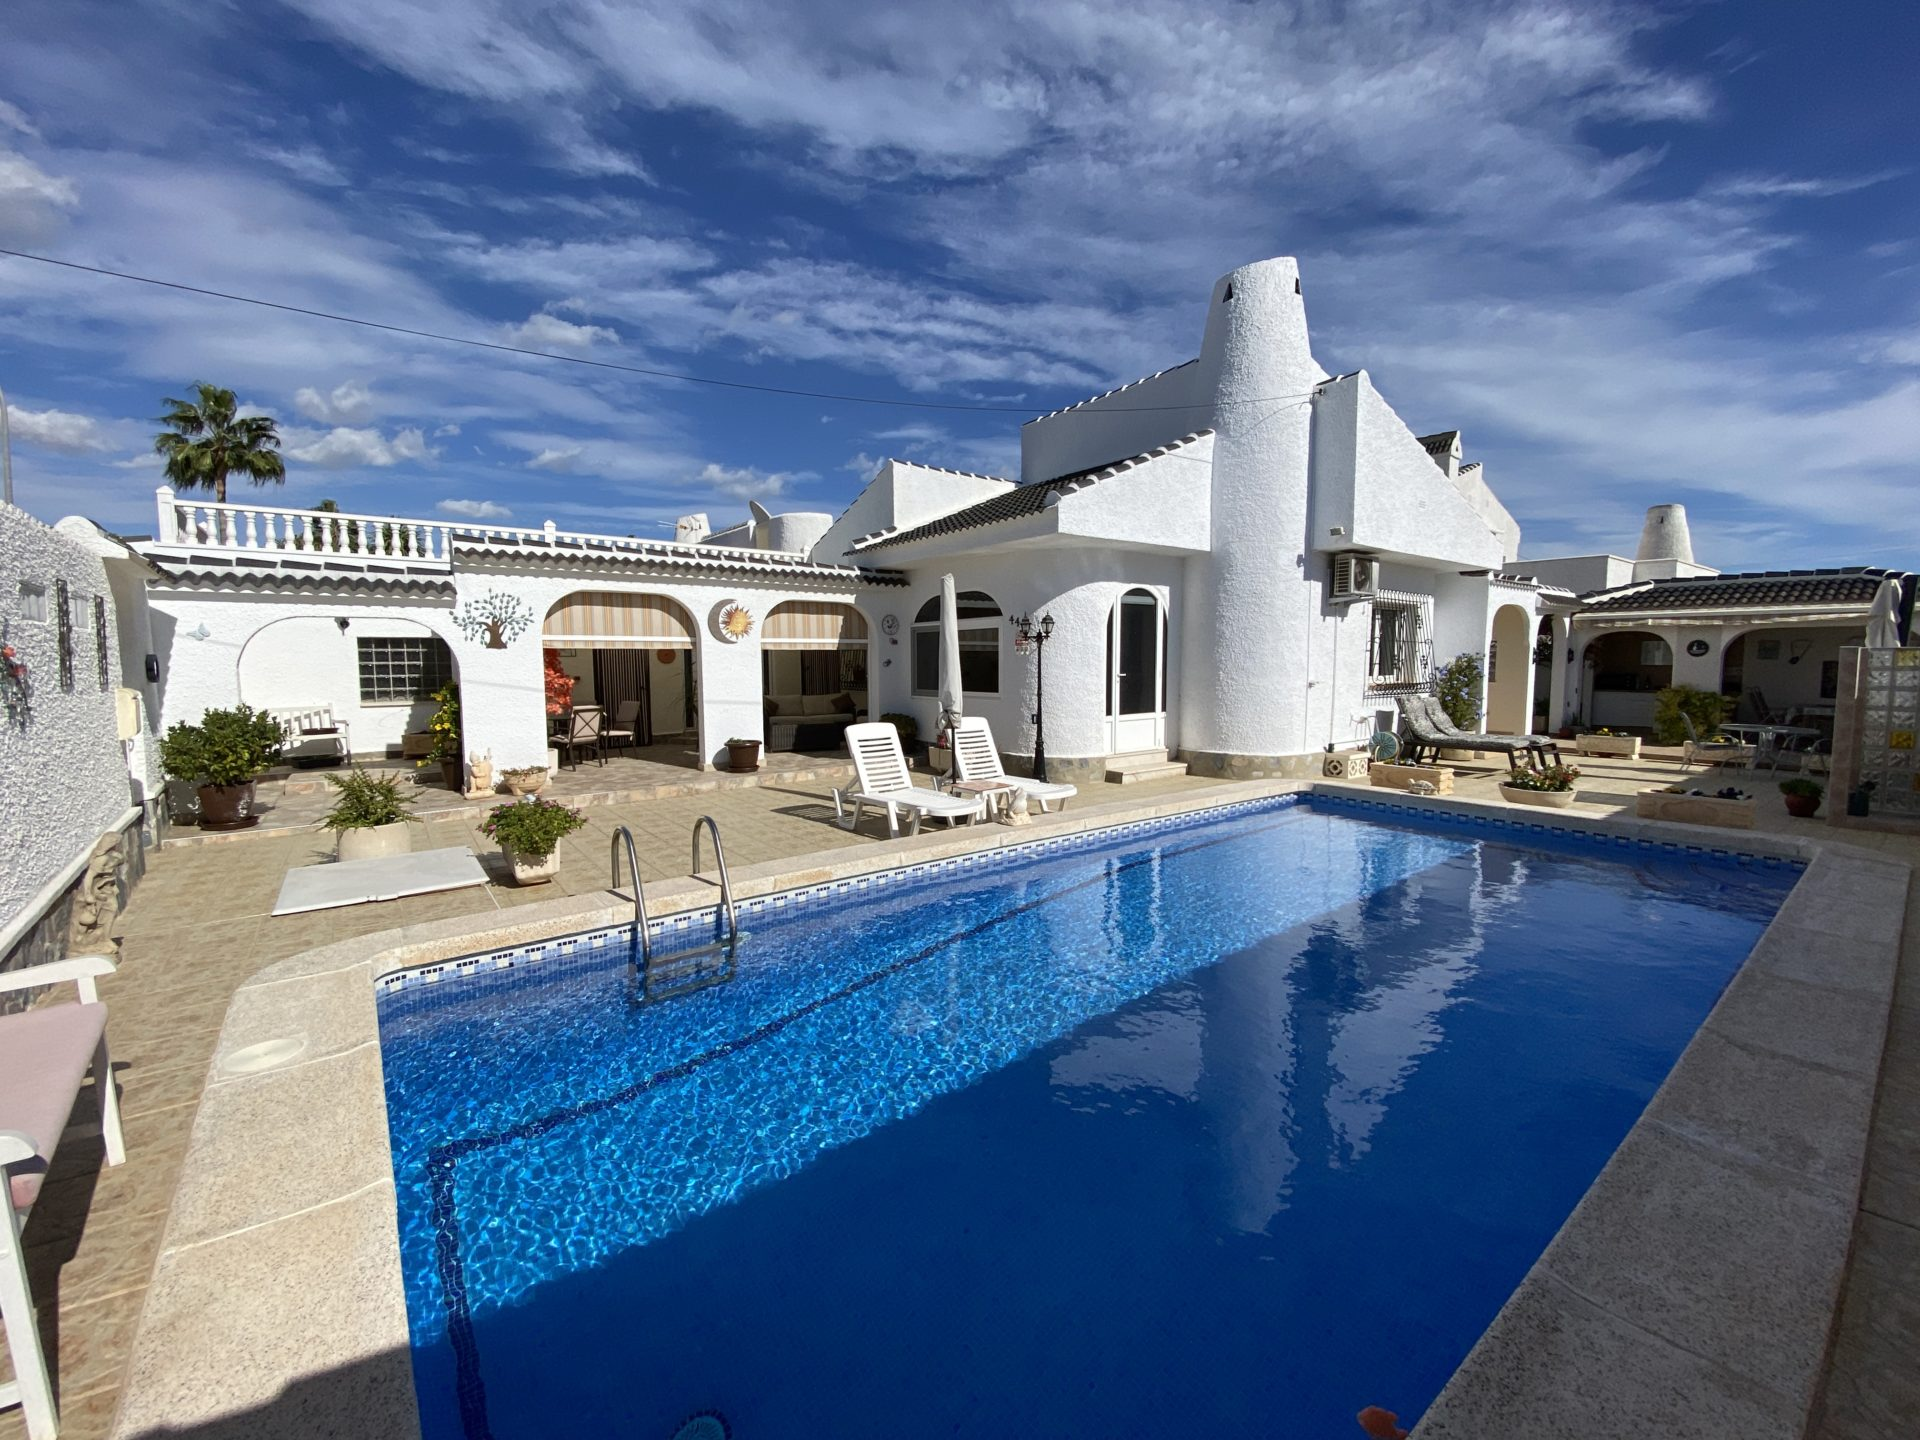 4 Bedroom Villa in Los Alcazares